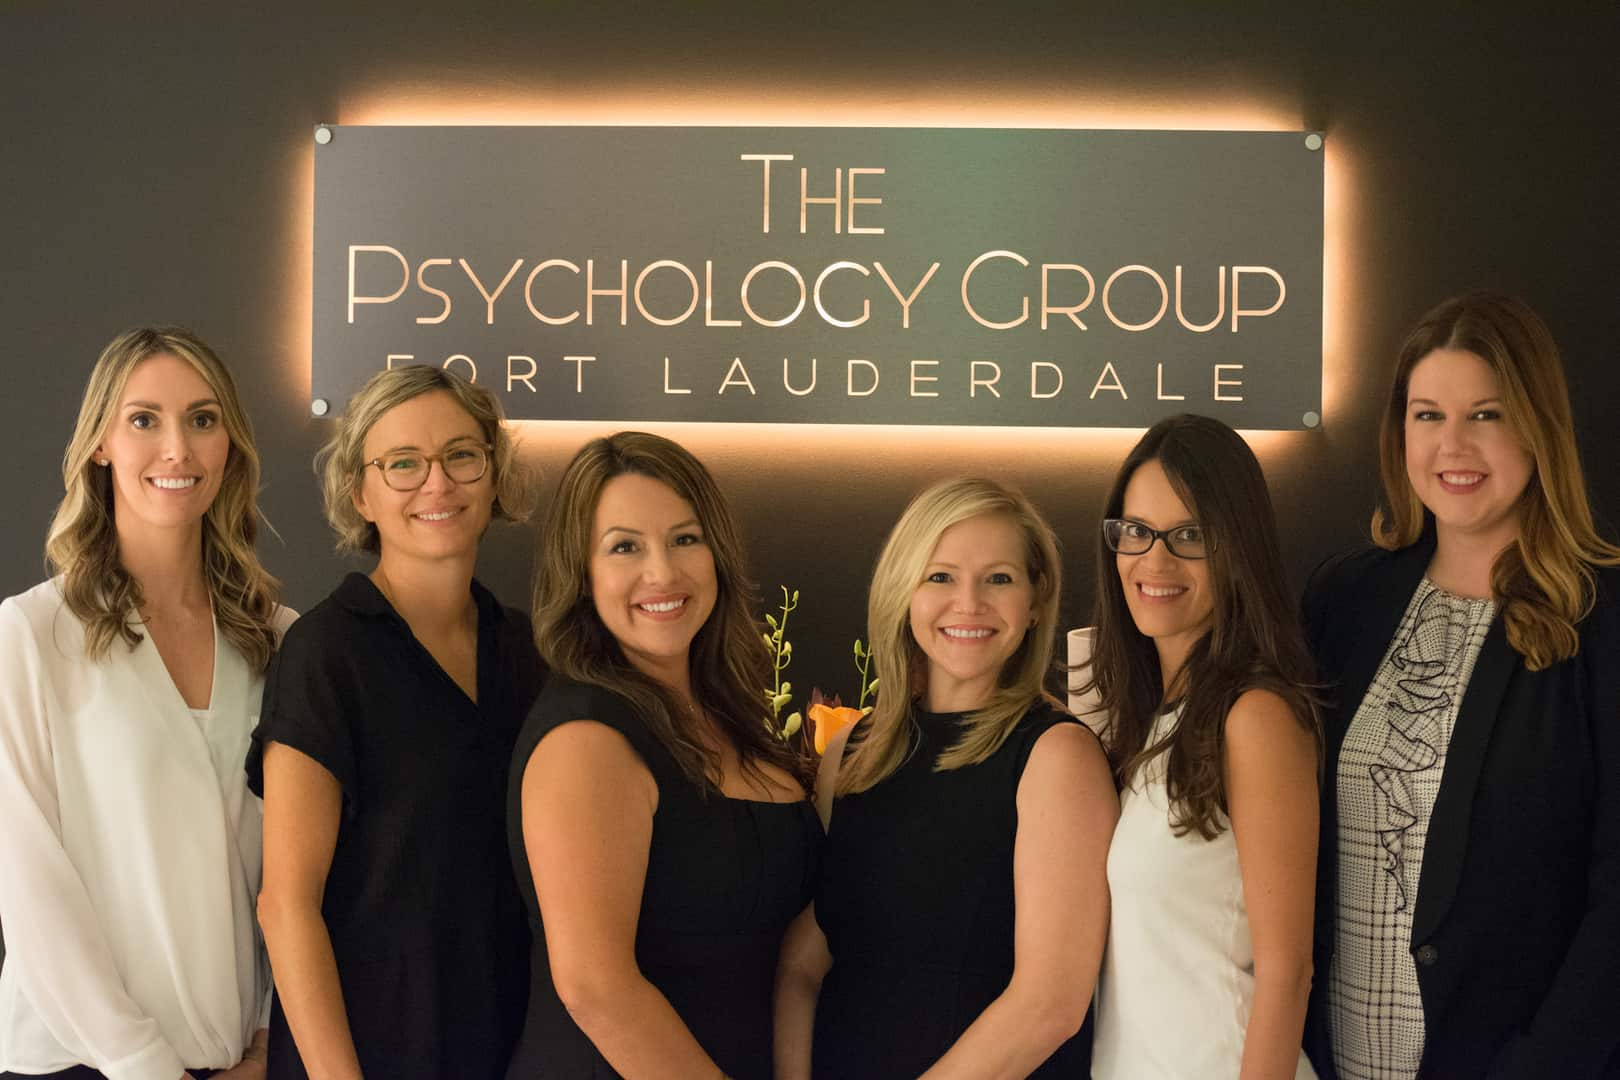 Expert Therapists and Psychologists at The Psychology Group Fort Lauderdale | Counseling & Therapy in Broward County, South Florida